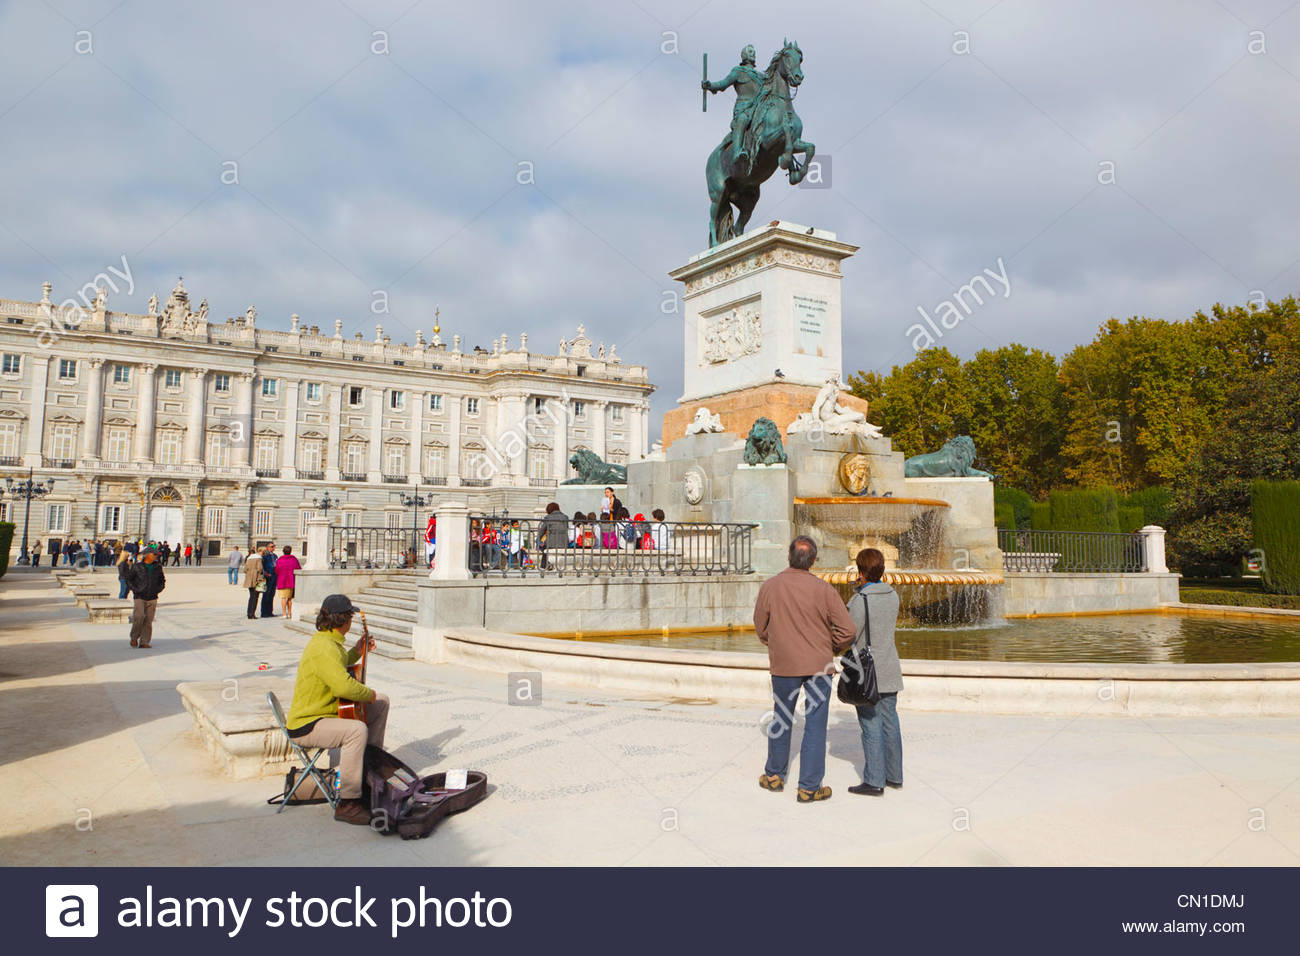 Statue In Front Of Royal Palace Of Madrid